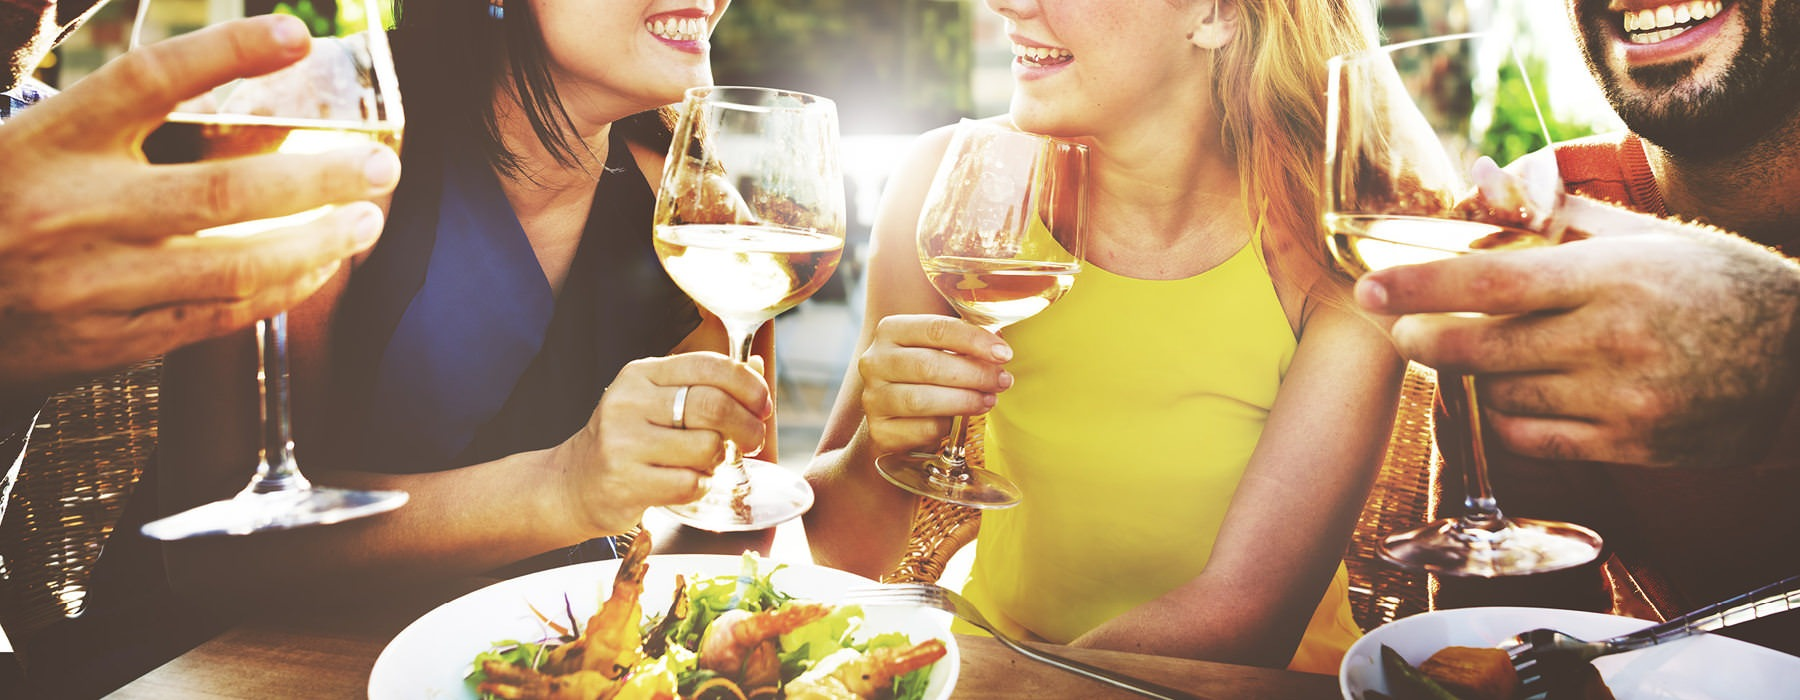 20 somethings toast wine glasses around a restaurant's table outdoors